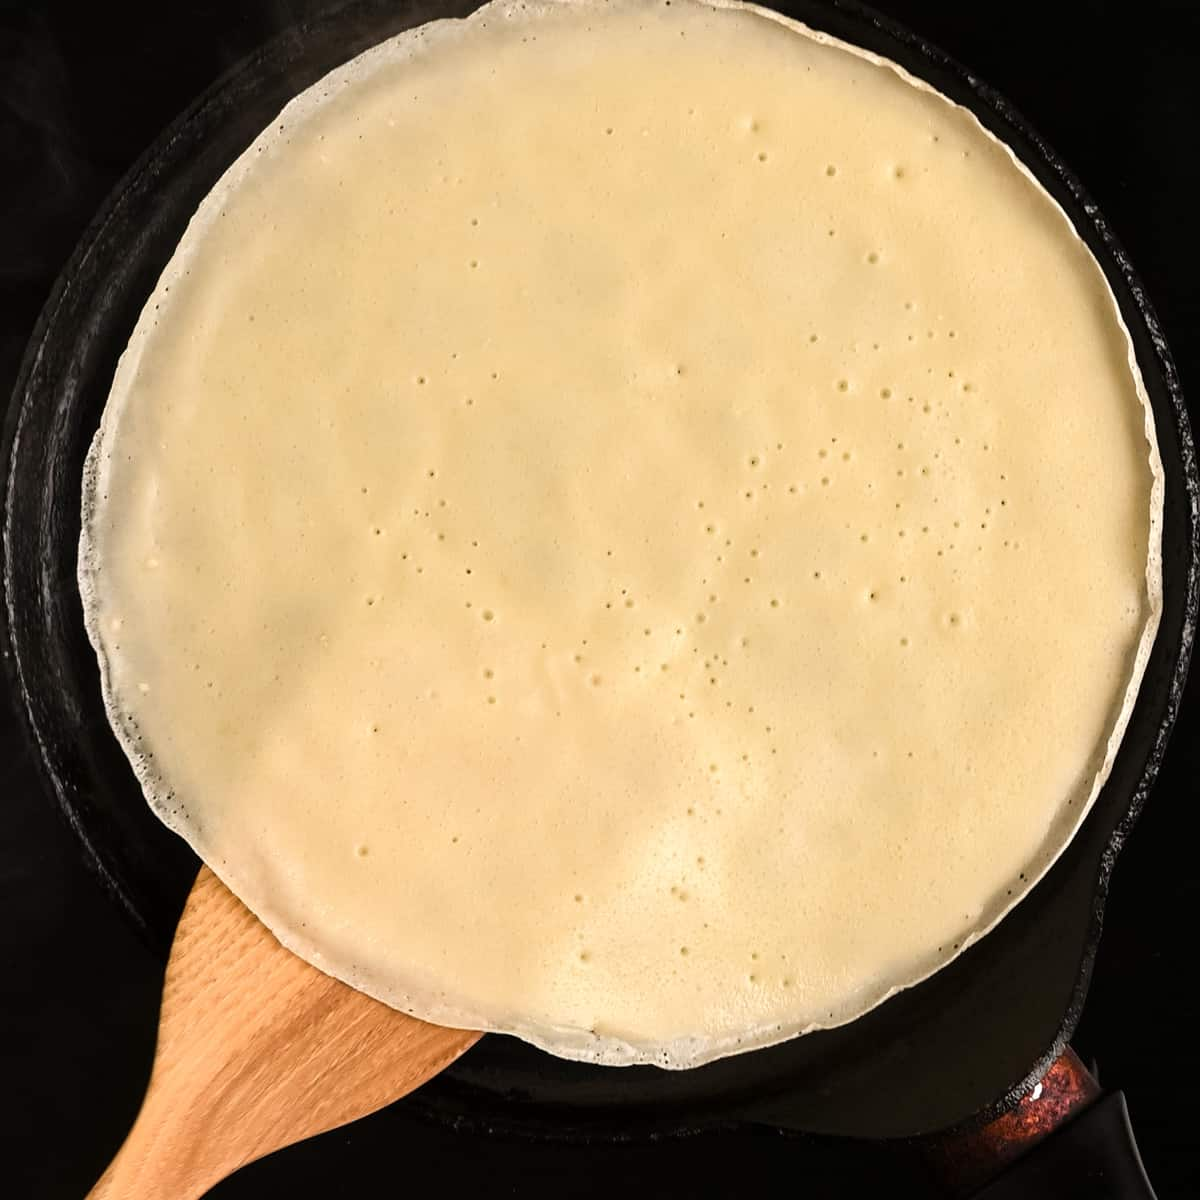 A spatula about to flip over a vegan crepe.